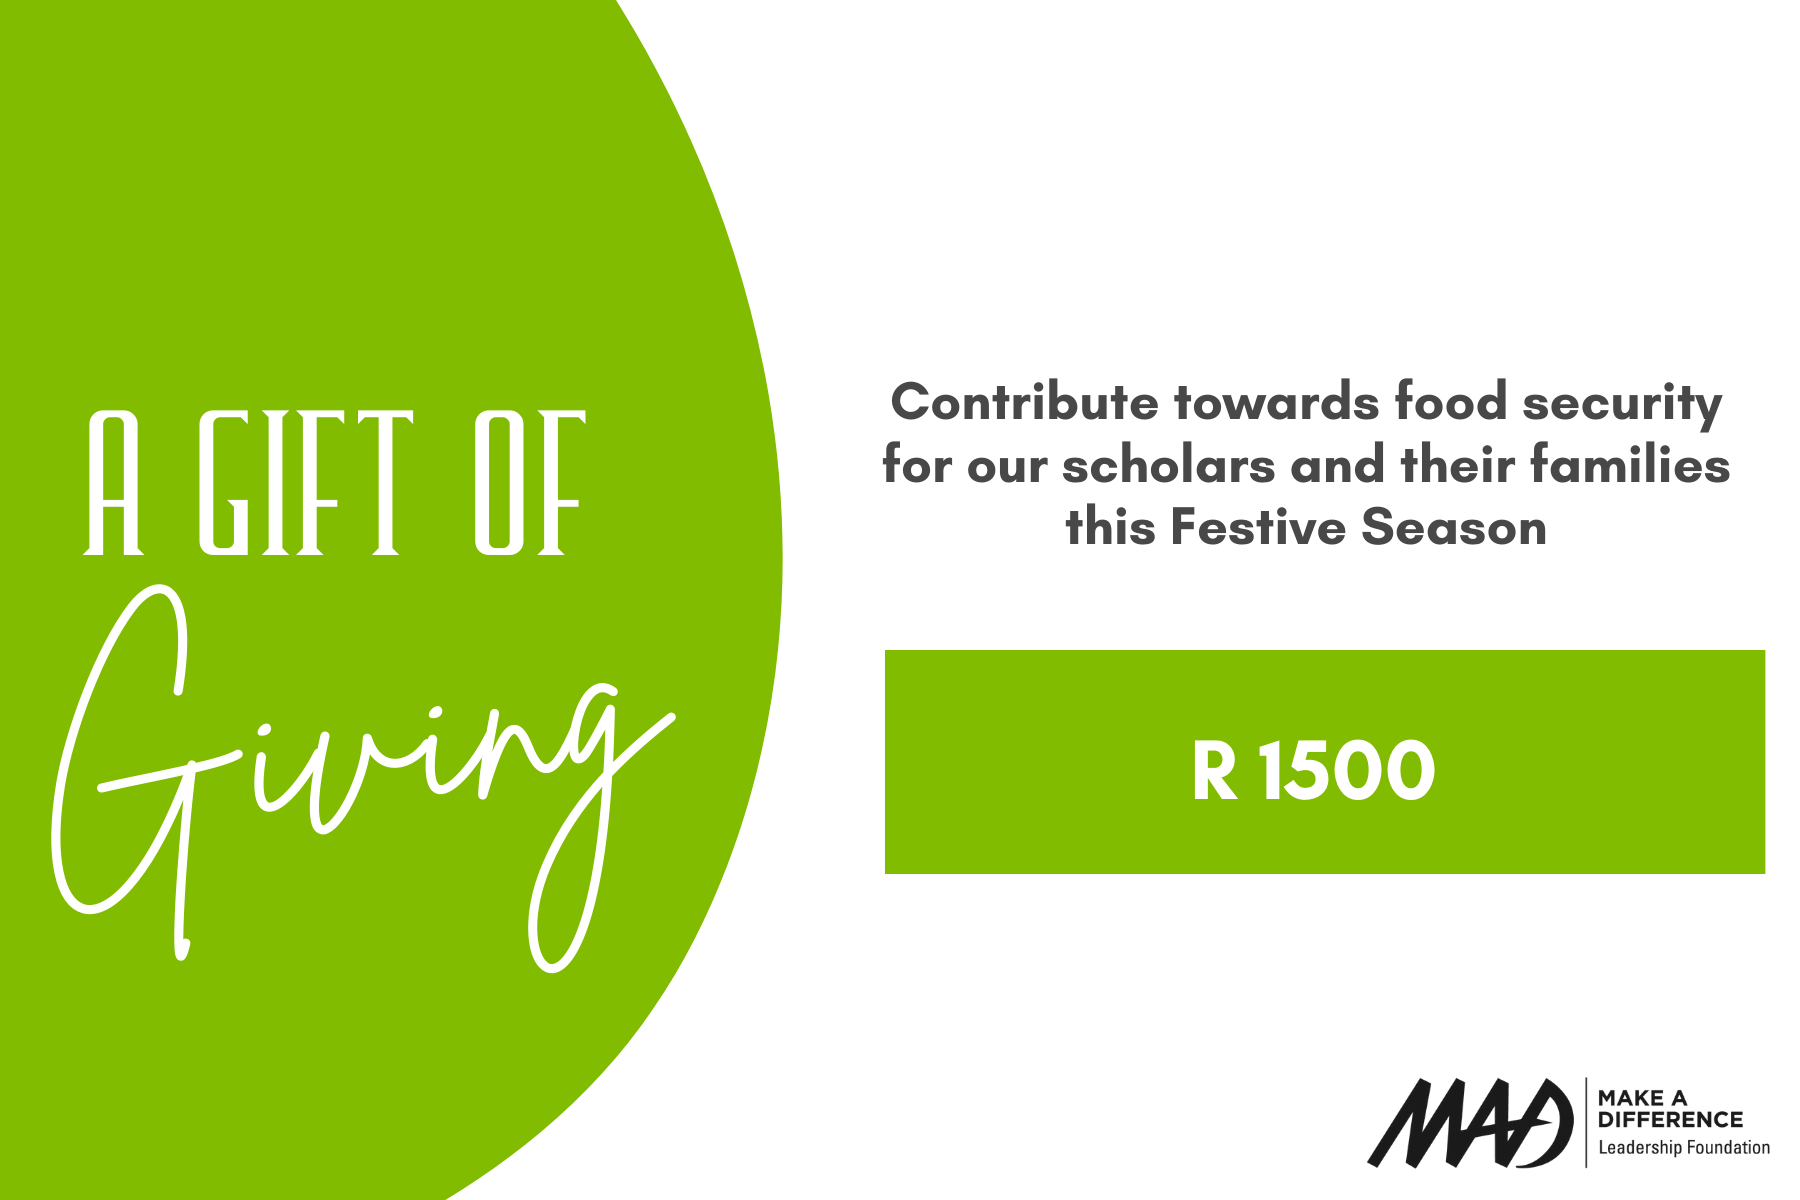 Contribute R1500 towards Food Security